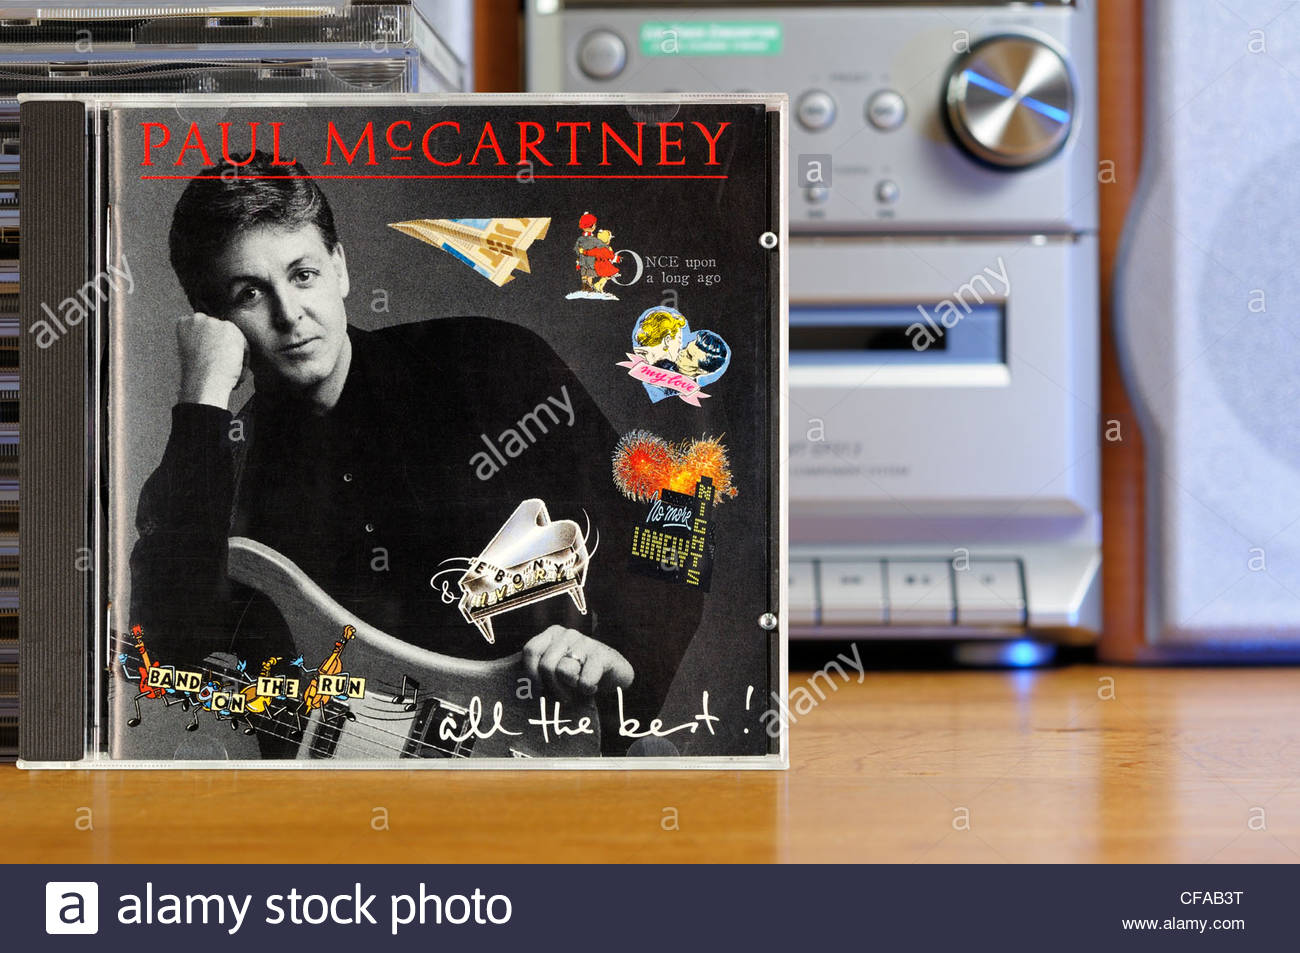 Paul McCartney All The Best Album CD Cases England